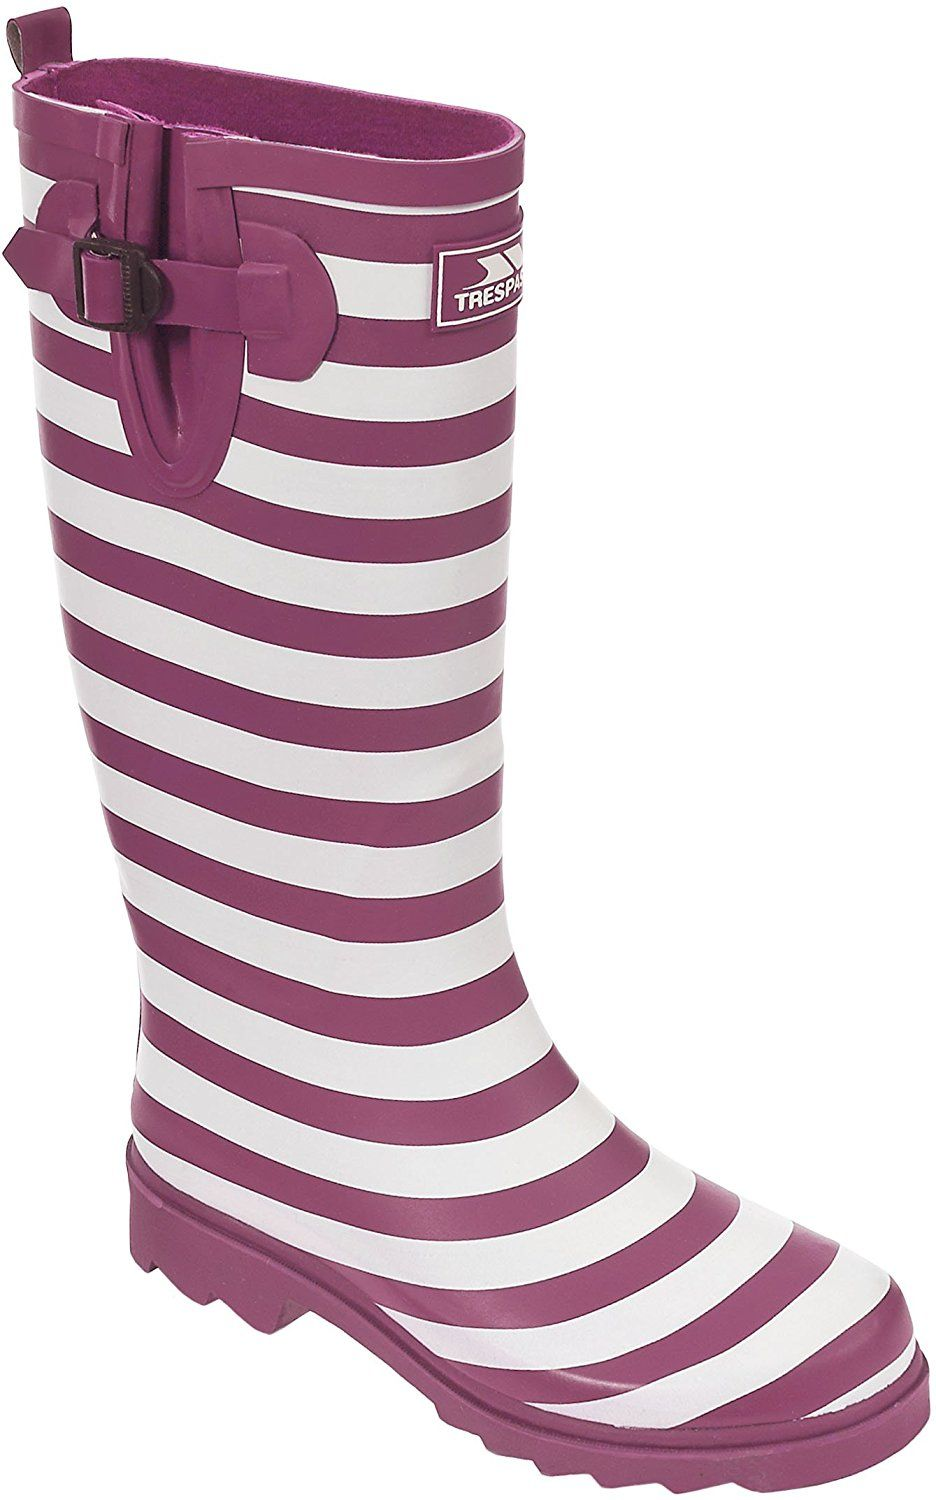 womens Trespass Ladies Samira Striped Rubber Welly Wellington Boots Rubber